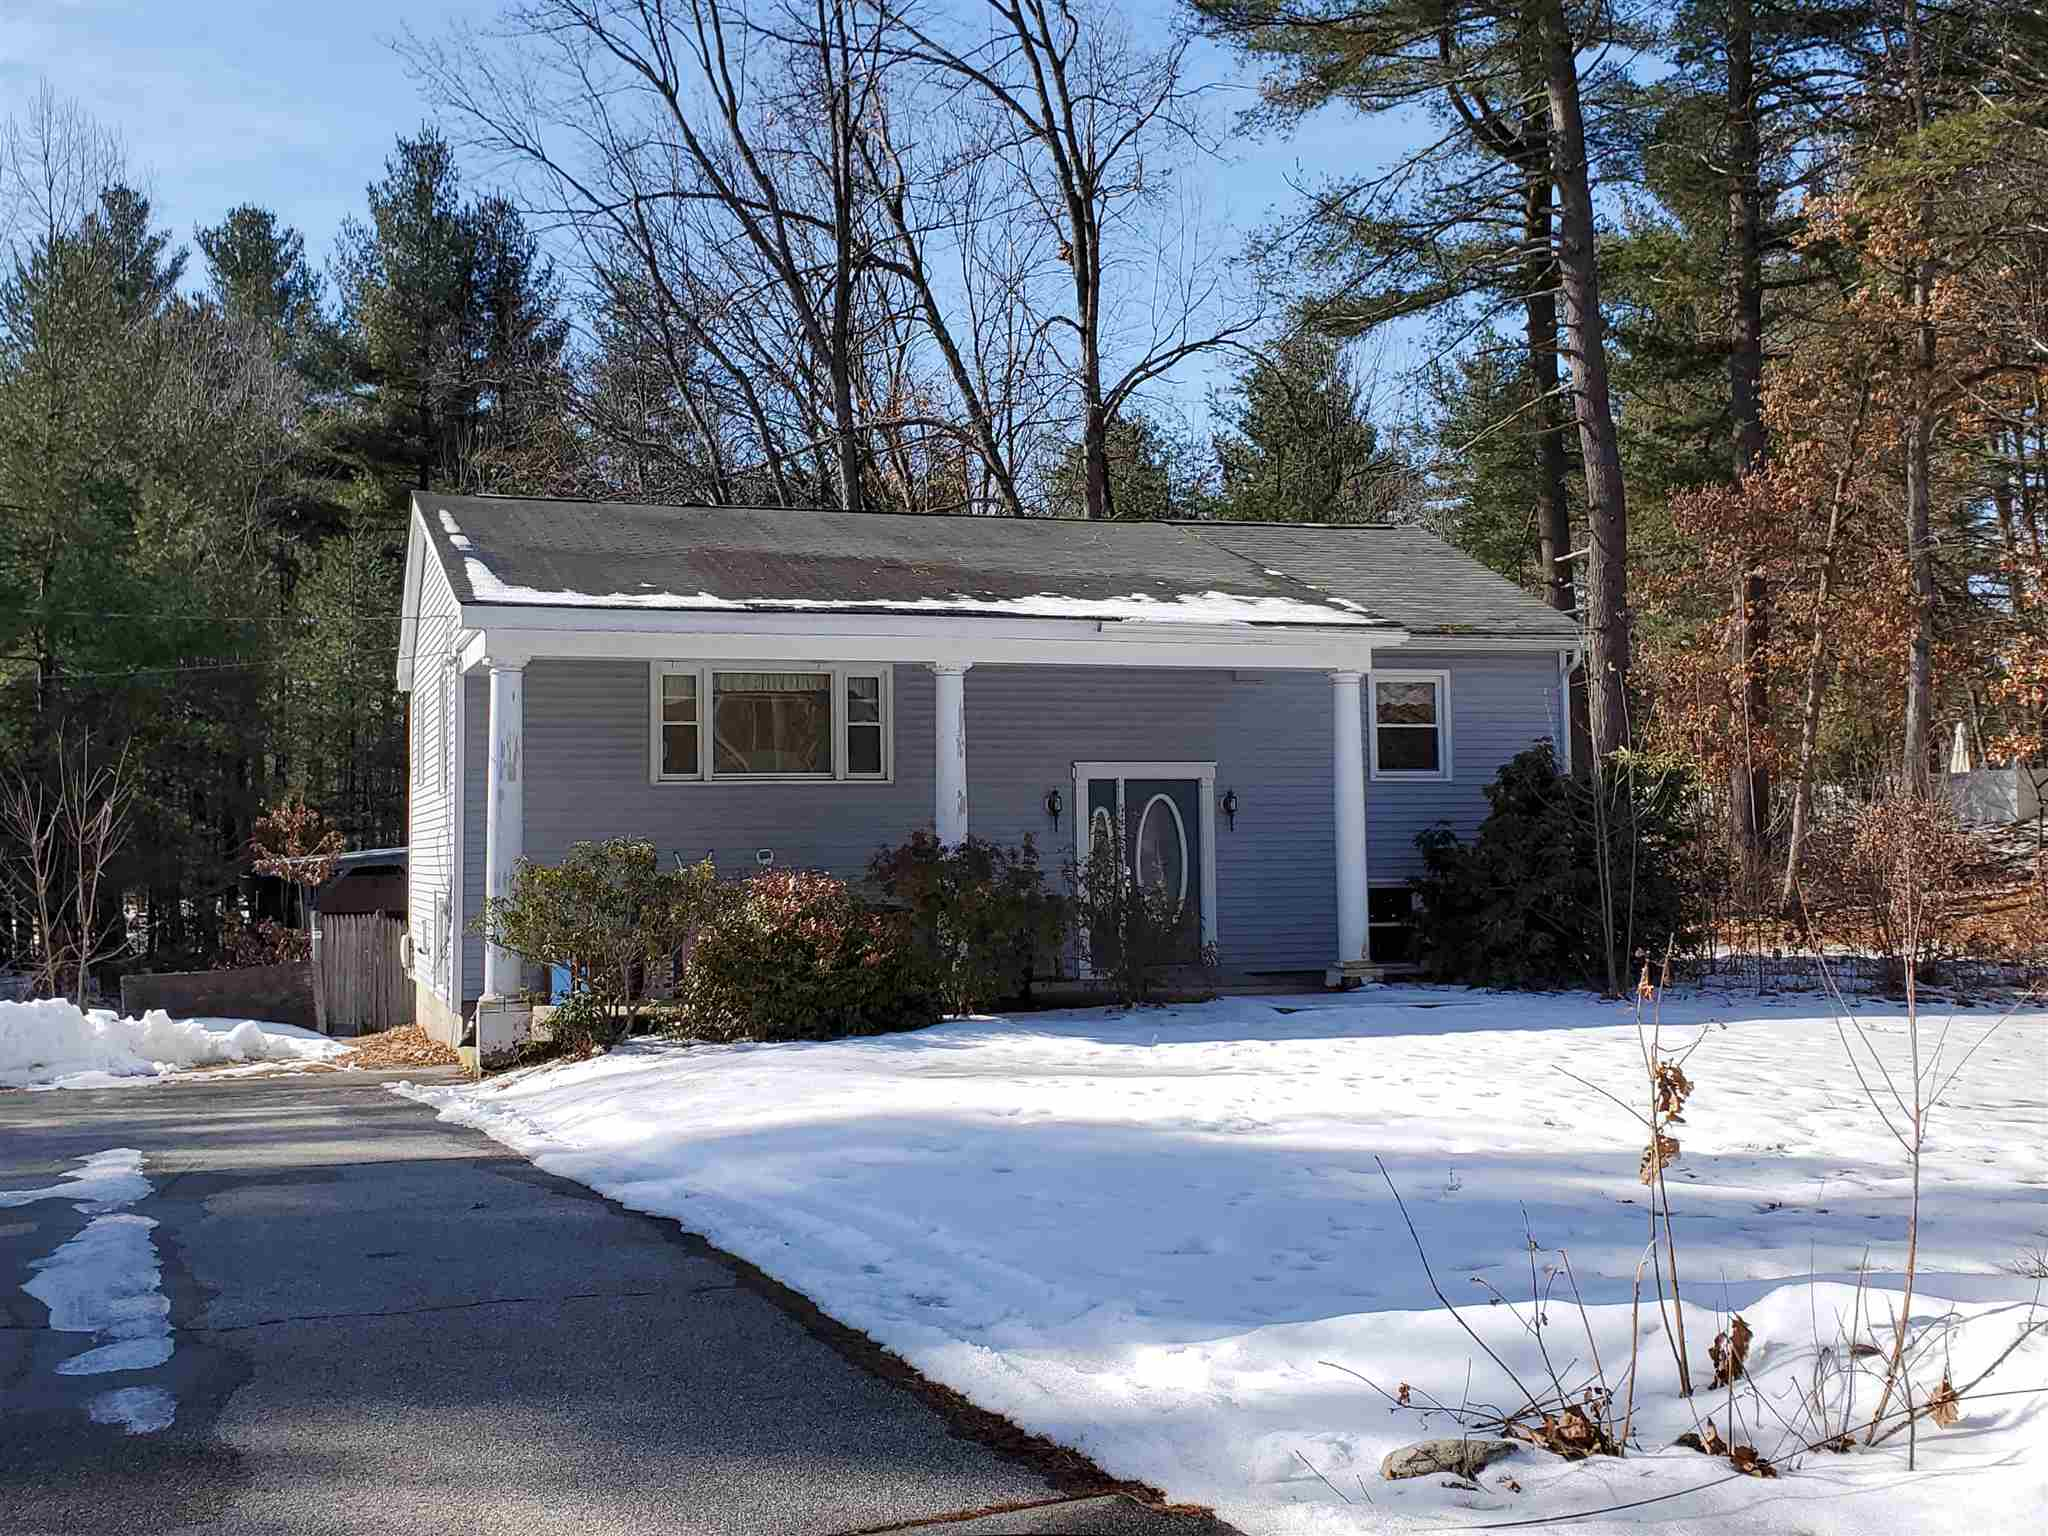 MLS 4793712: 16 Louise Drive, Litchfield NH